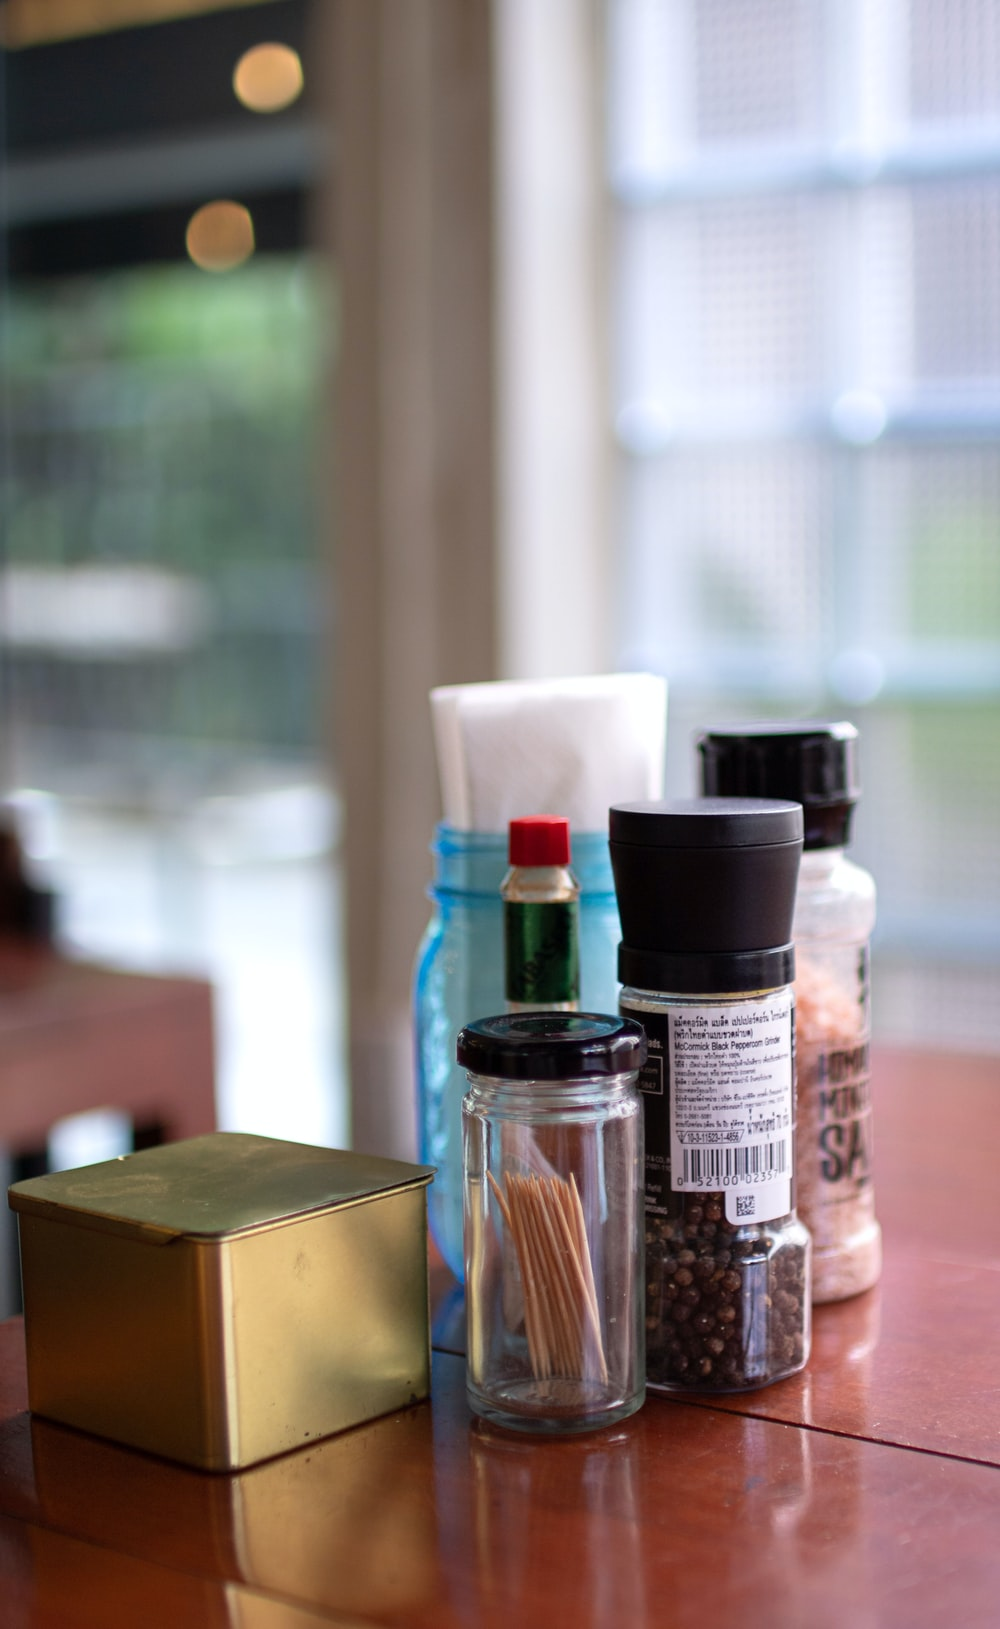 bokeh photography of condiment shakers